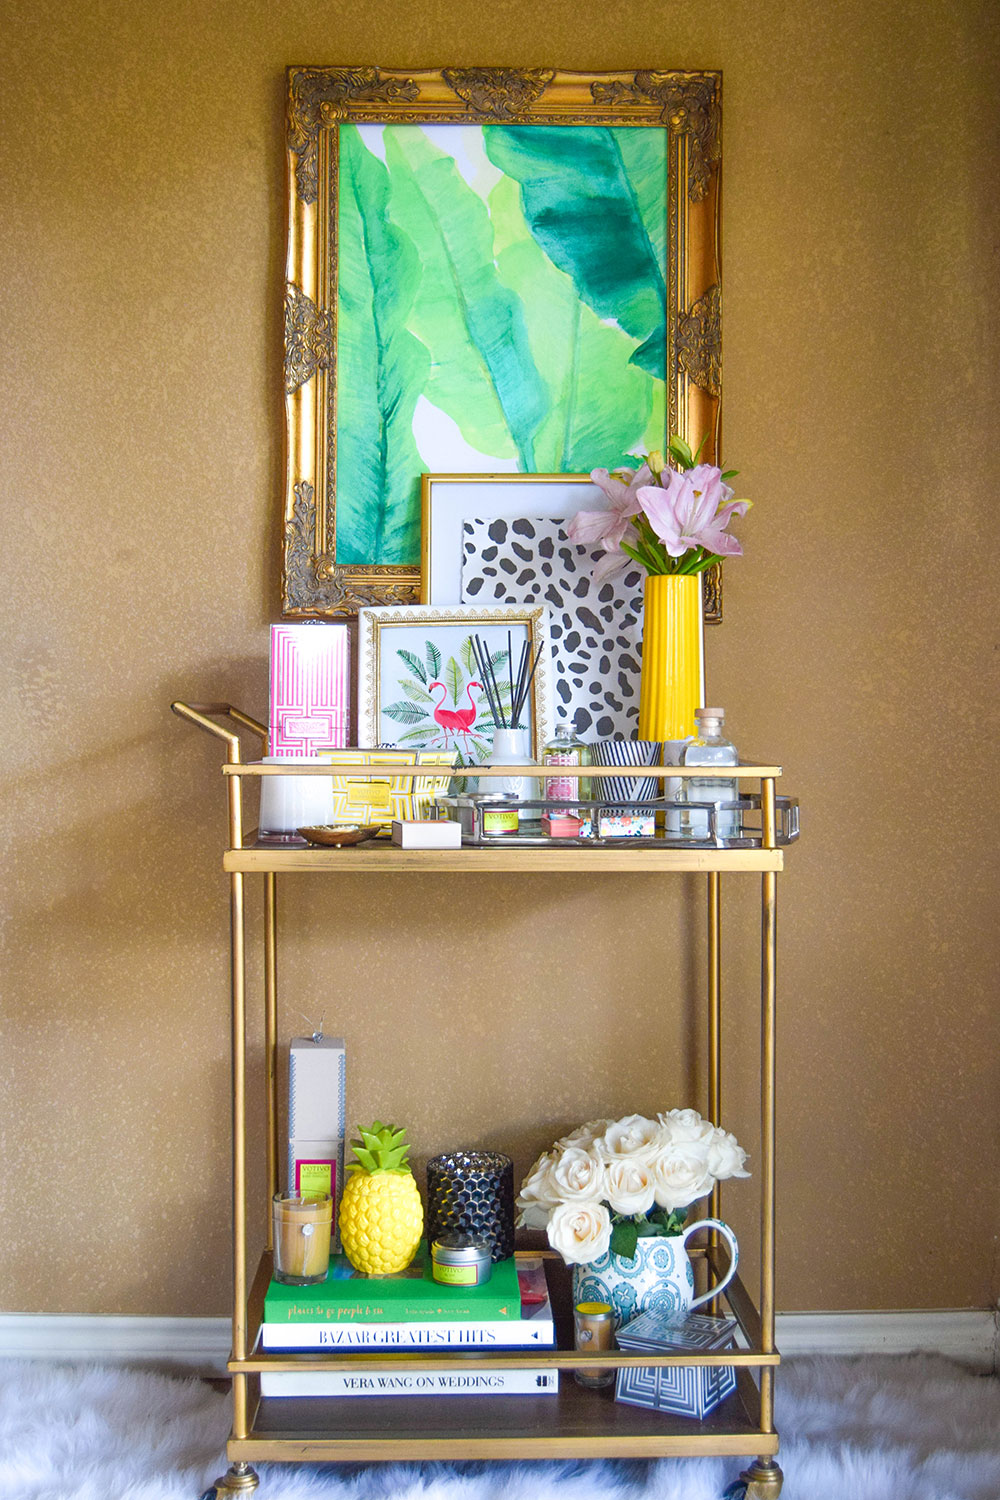 vandi-fair-dallas-fashion-blog-lauren-vandiver-southern-texas-blogger-interior-home-votivo-candles-bar-cart-decor-12